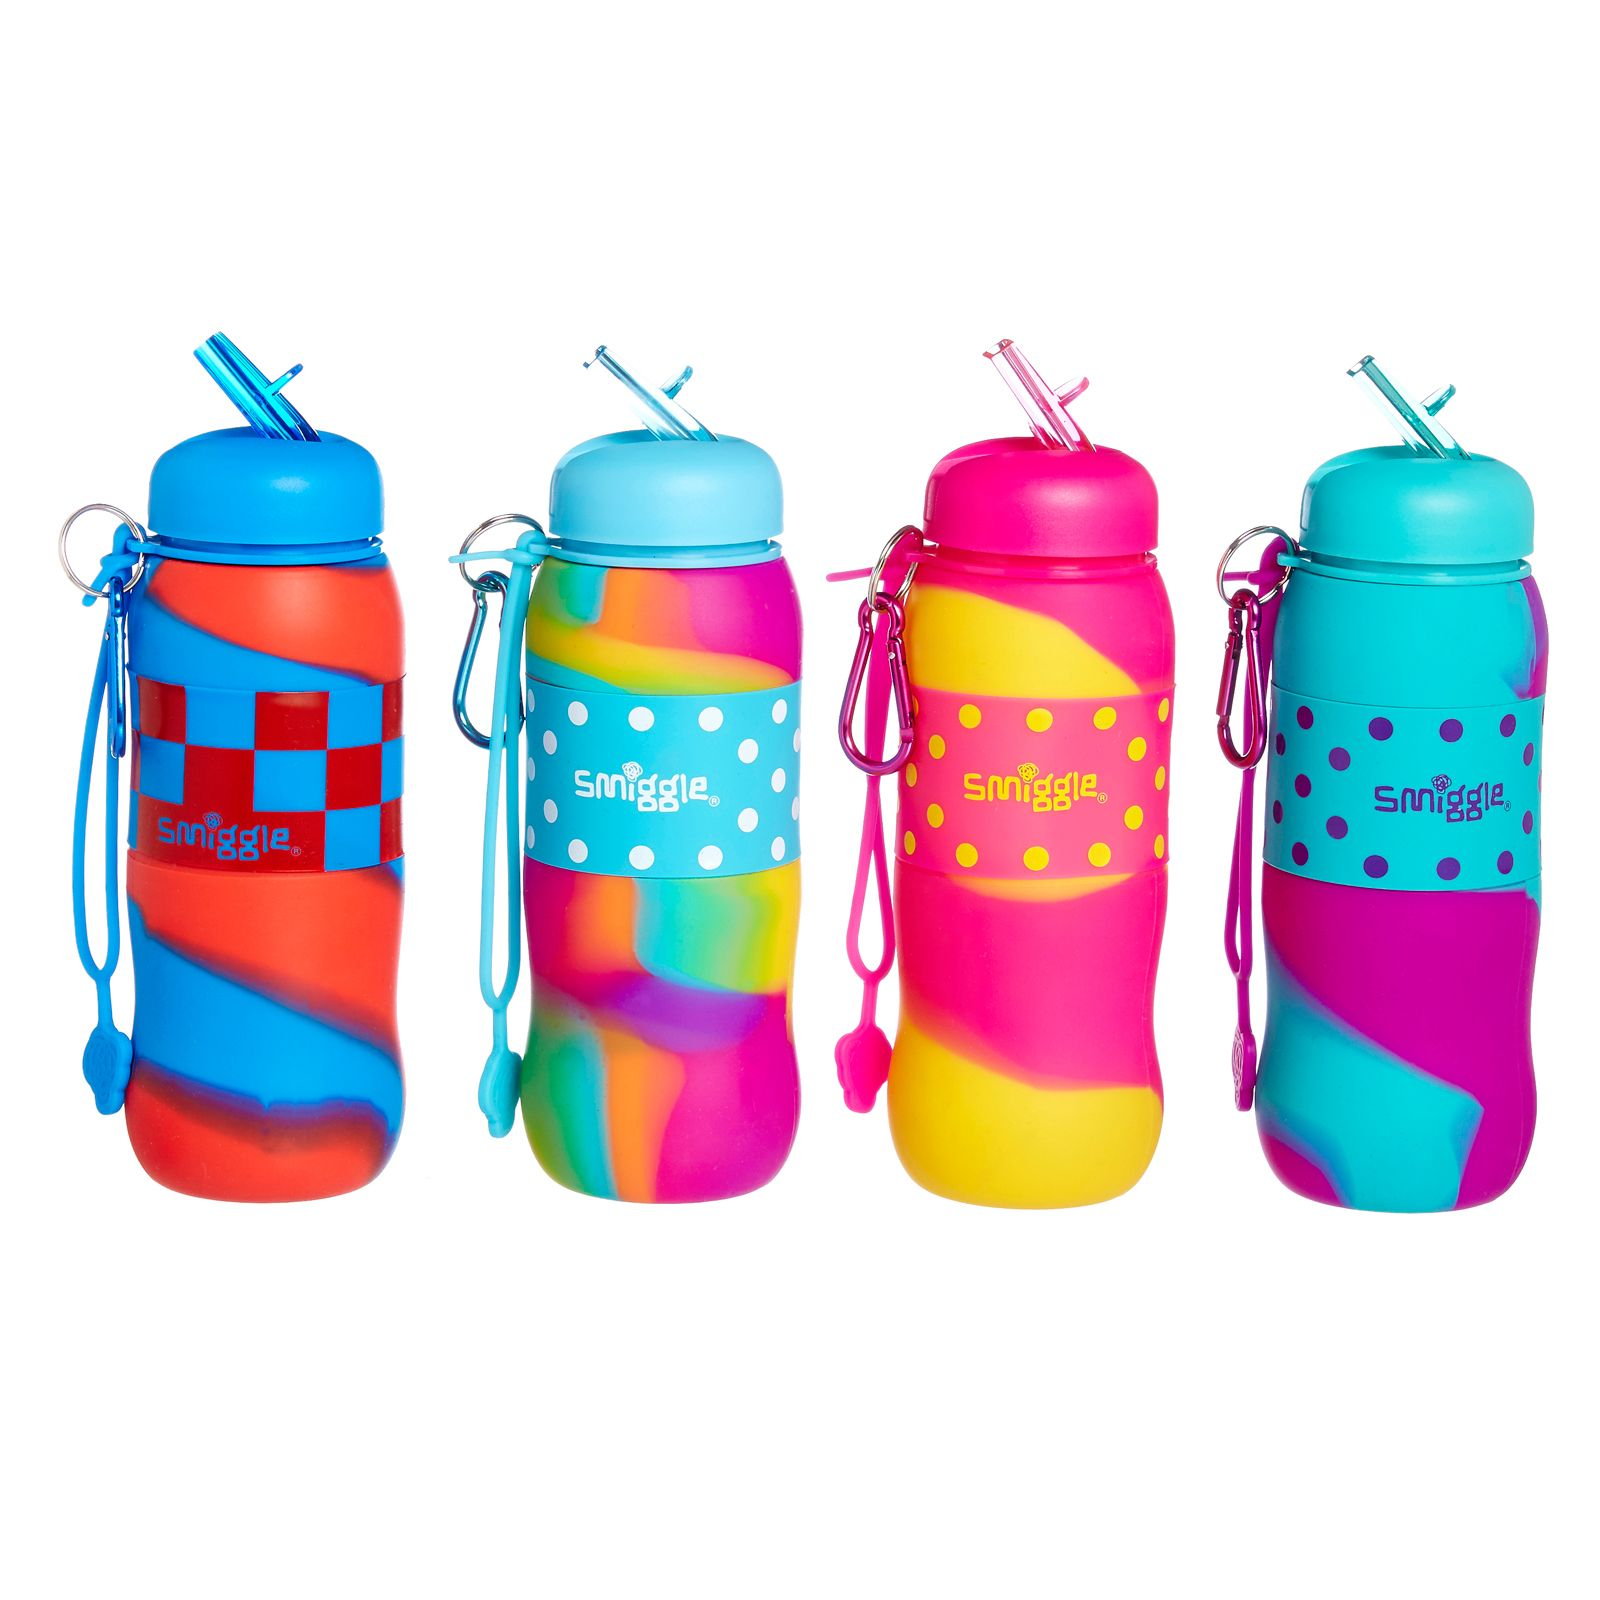 Smiggle Squishy Water Bottle : 2Tone Silicone Roll Bottle Smiggle Children packag --???? Pinterest Bottle, Stationary ...